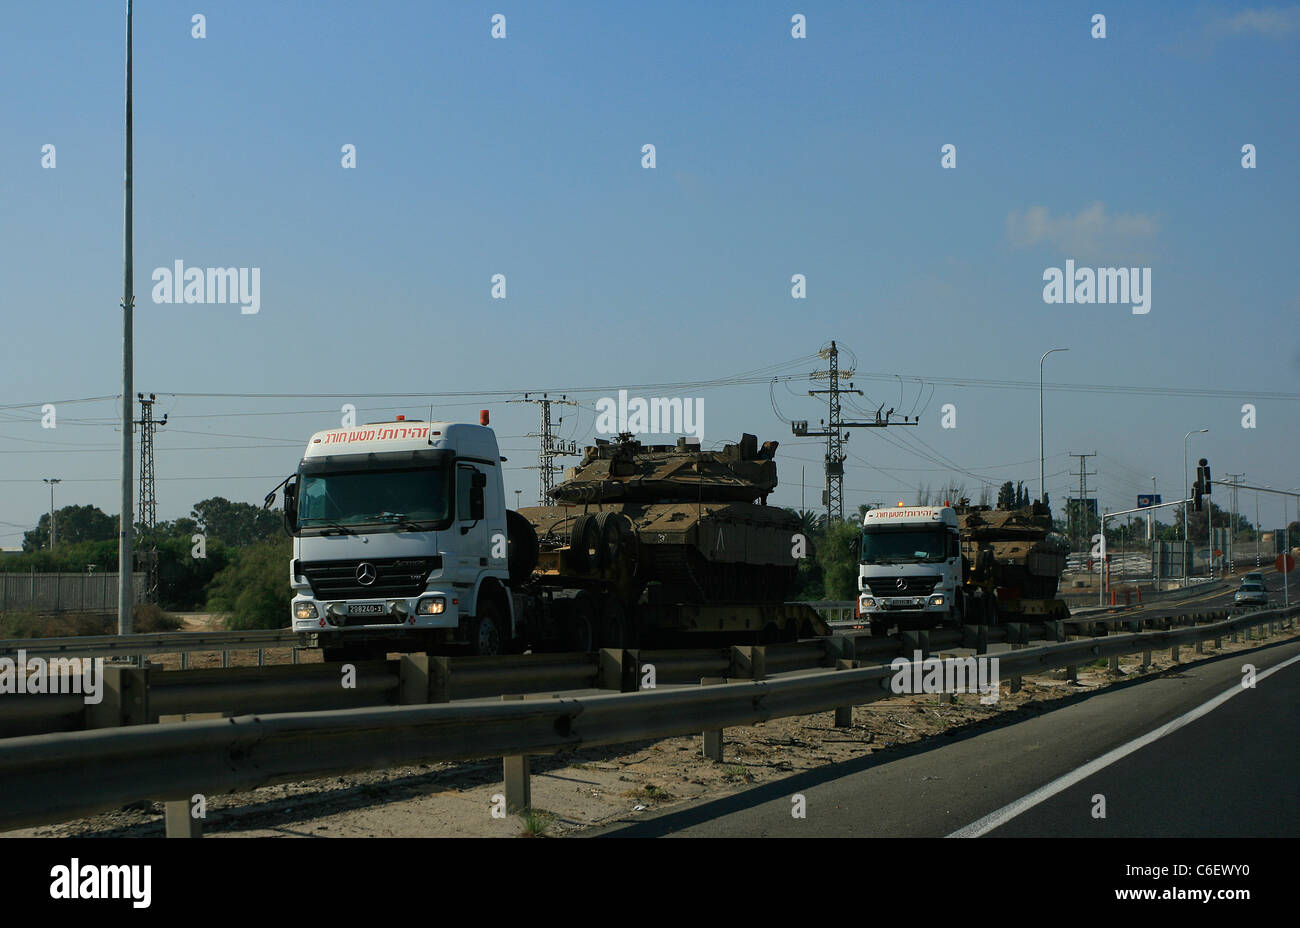 Shipment of main battle tanks taking part of the Israel Defense forces seen on the highway near Ashqelon, Israel. - Stock Image